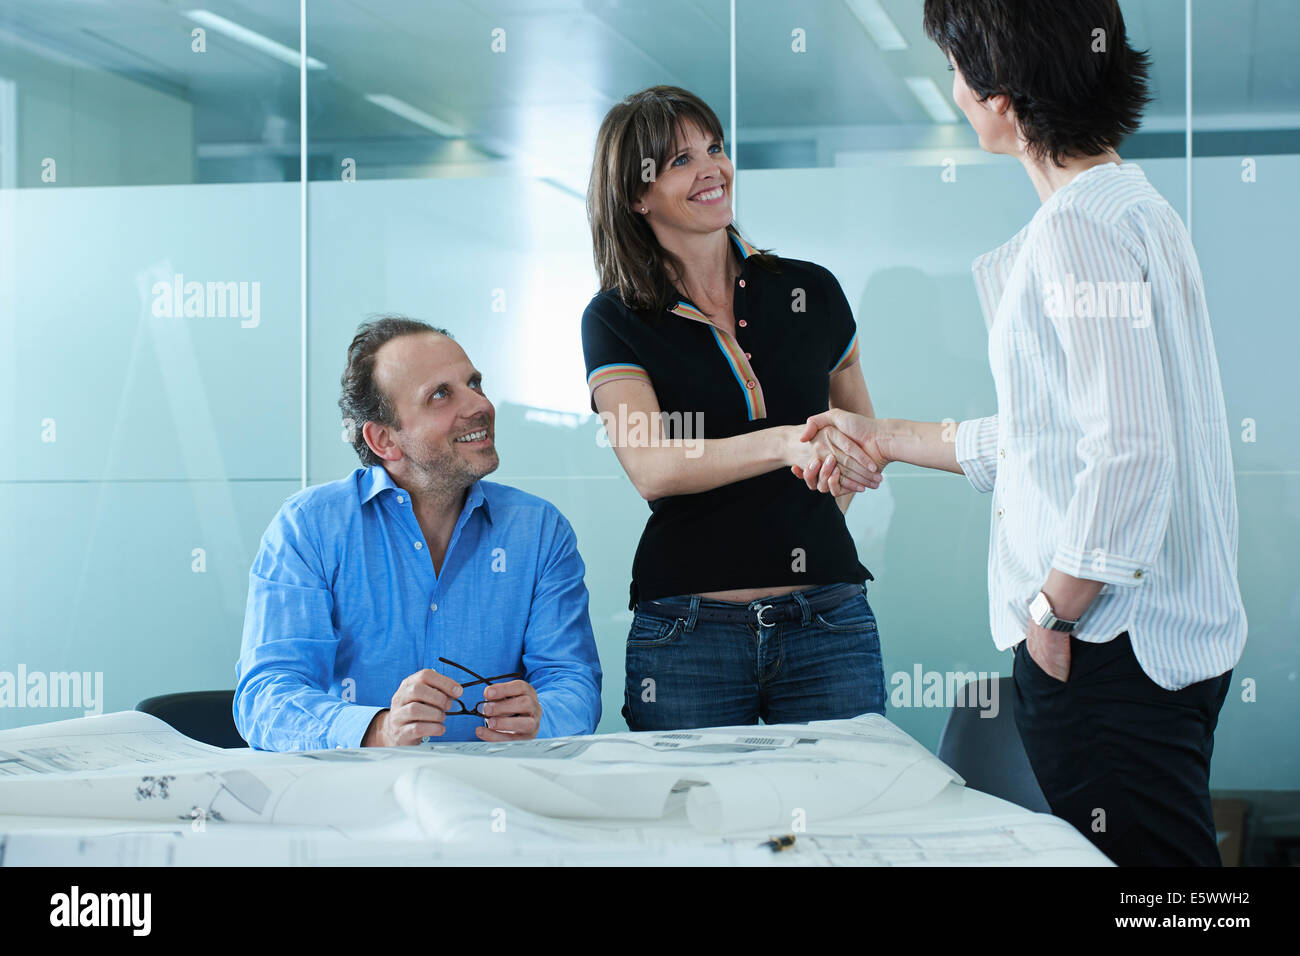 Architect greeting client with blueprints on boardroom table - Stock Image